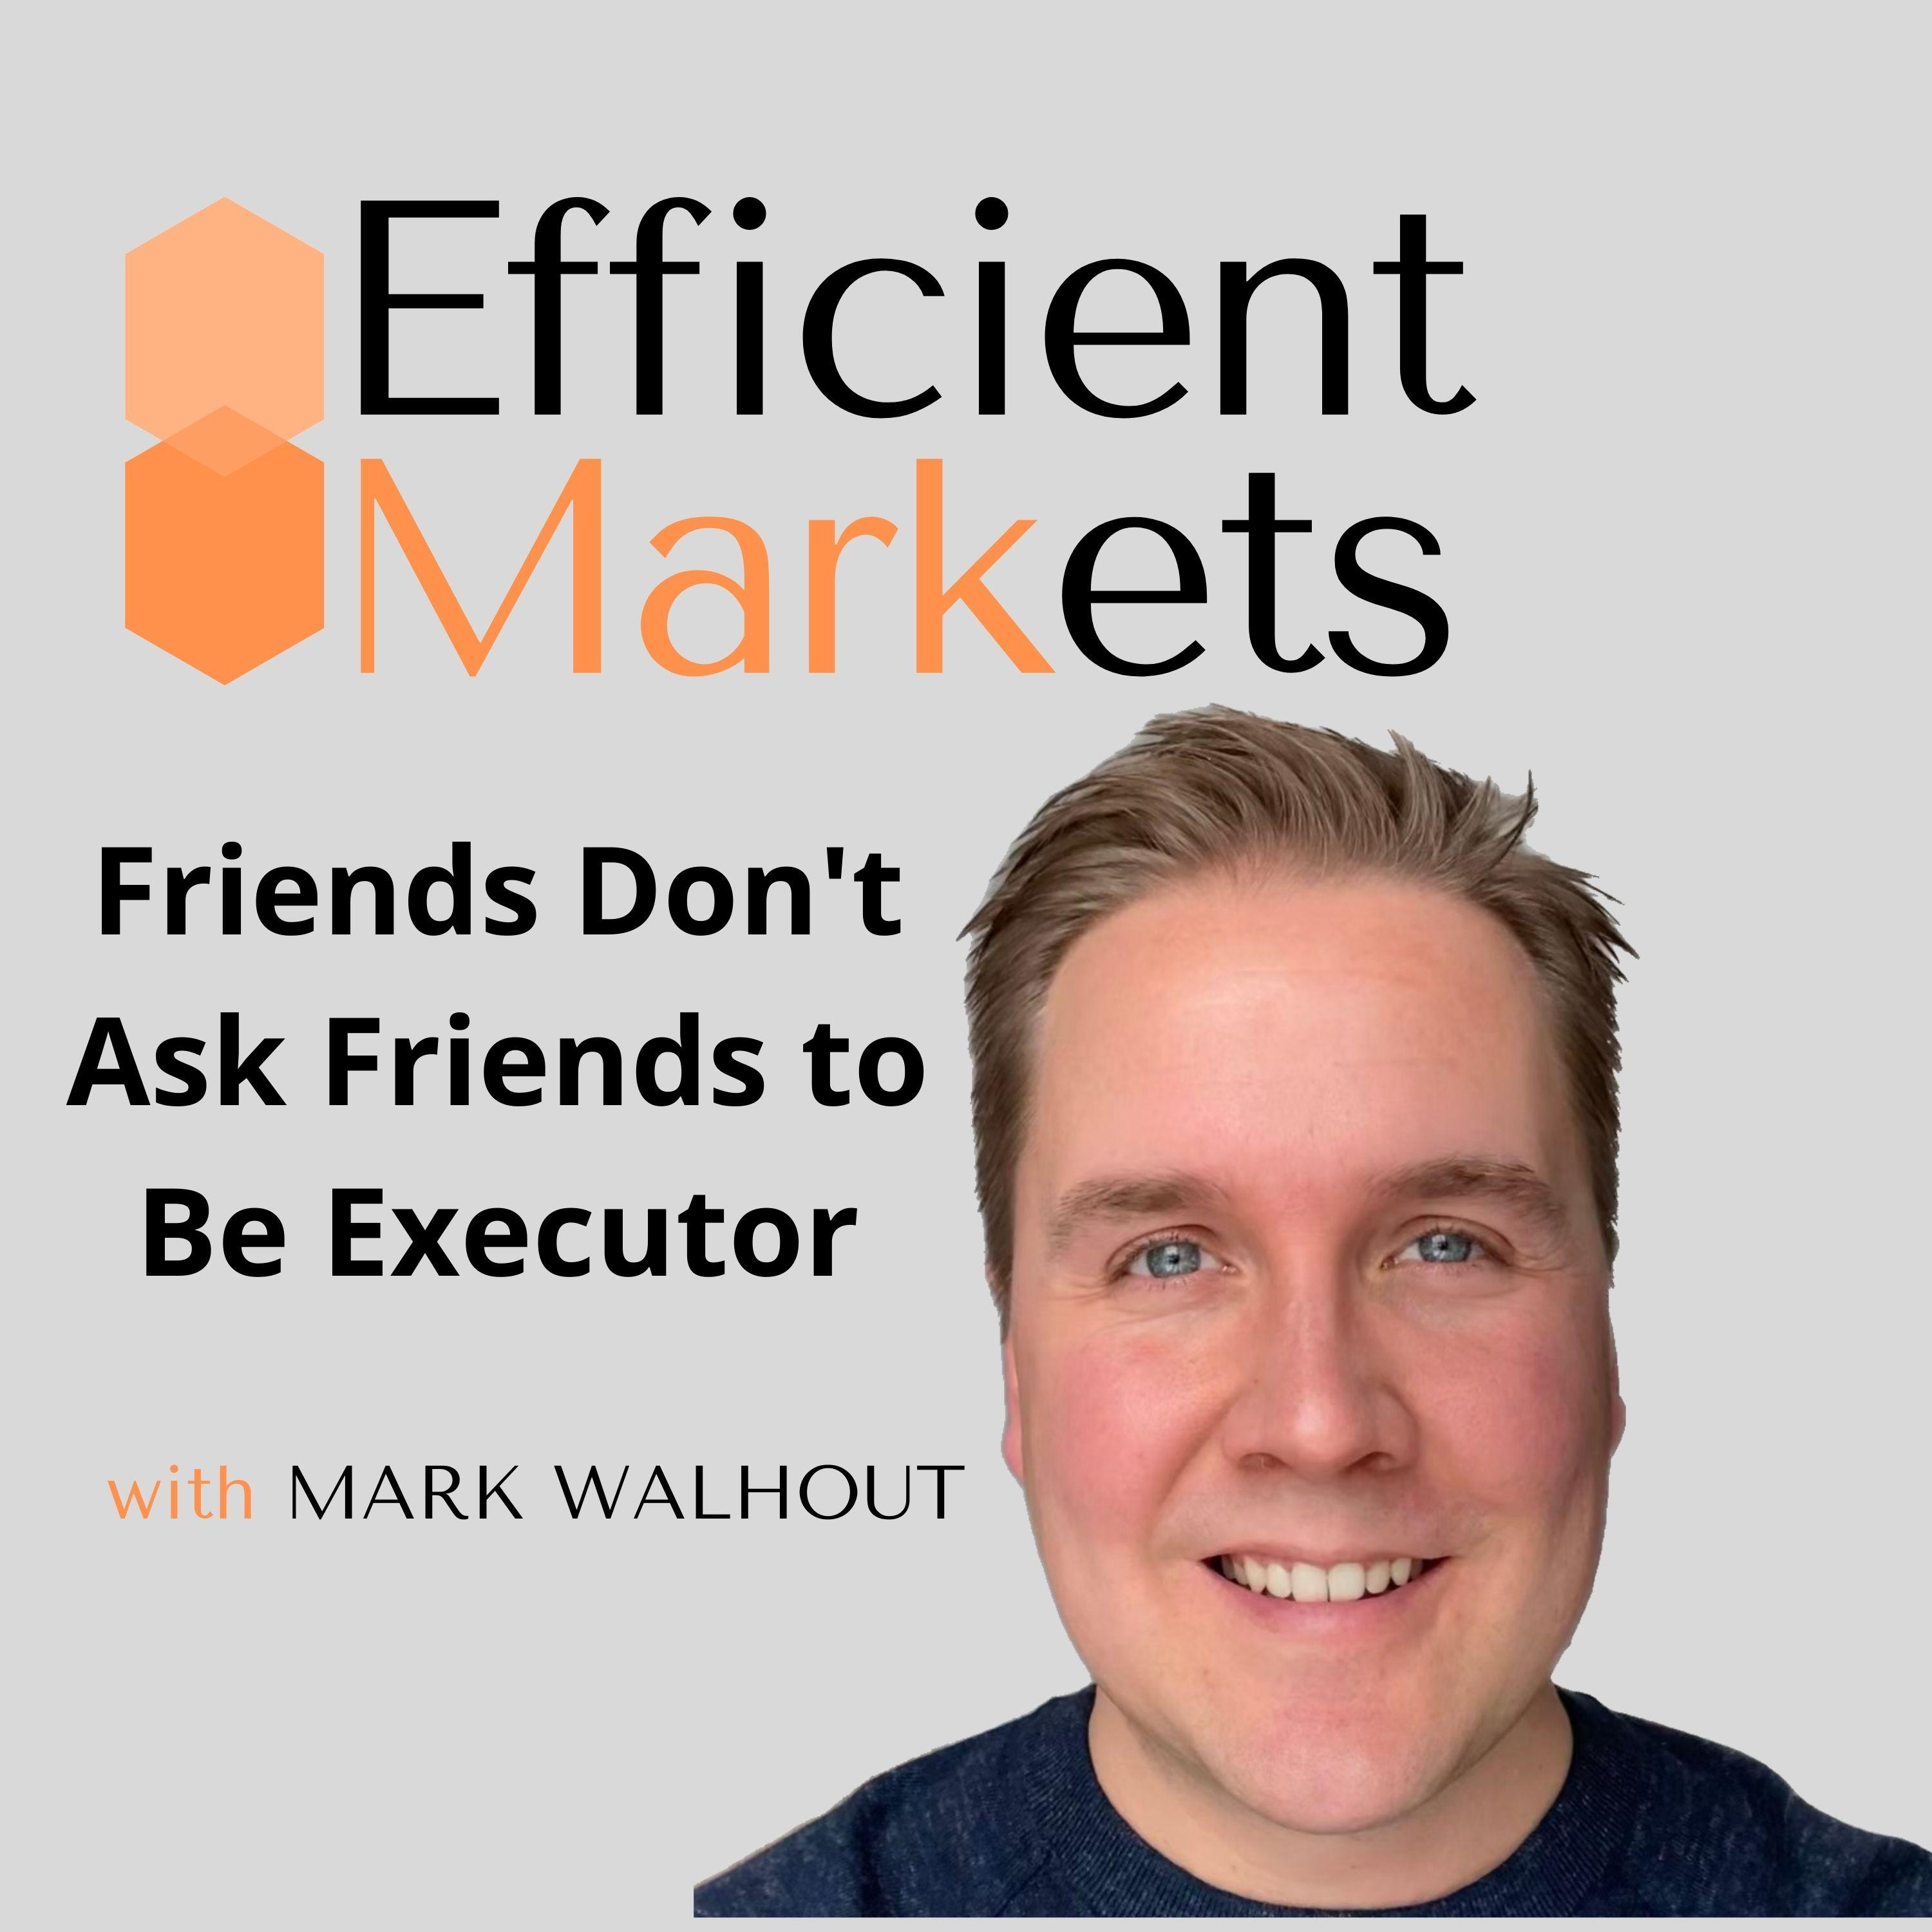 Friends Don't Ask Friends to Be Executor Thumbnail